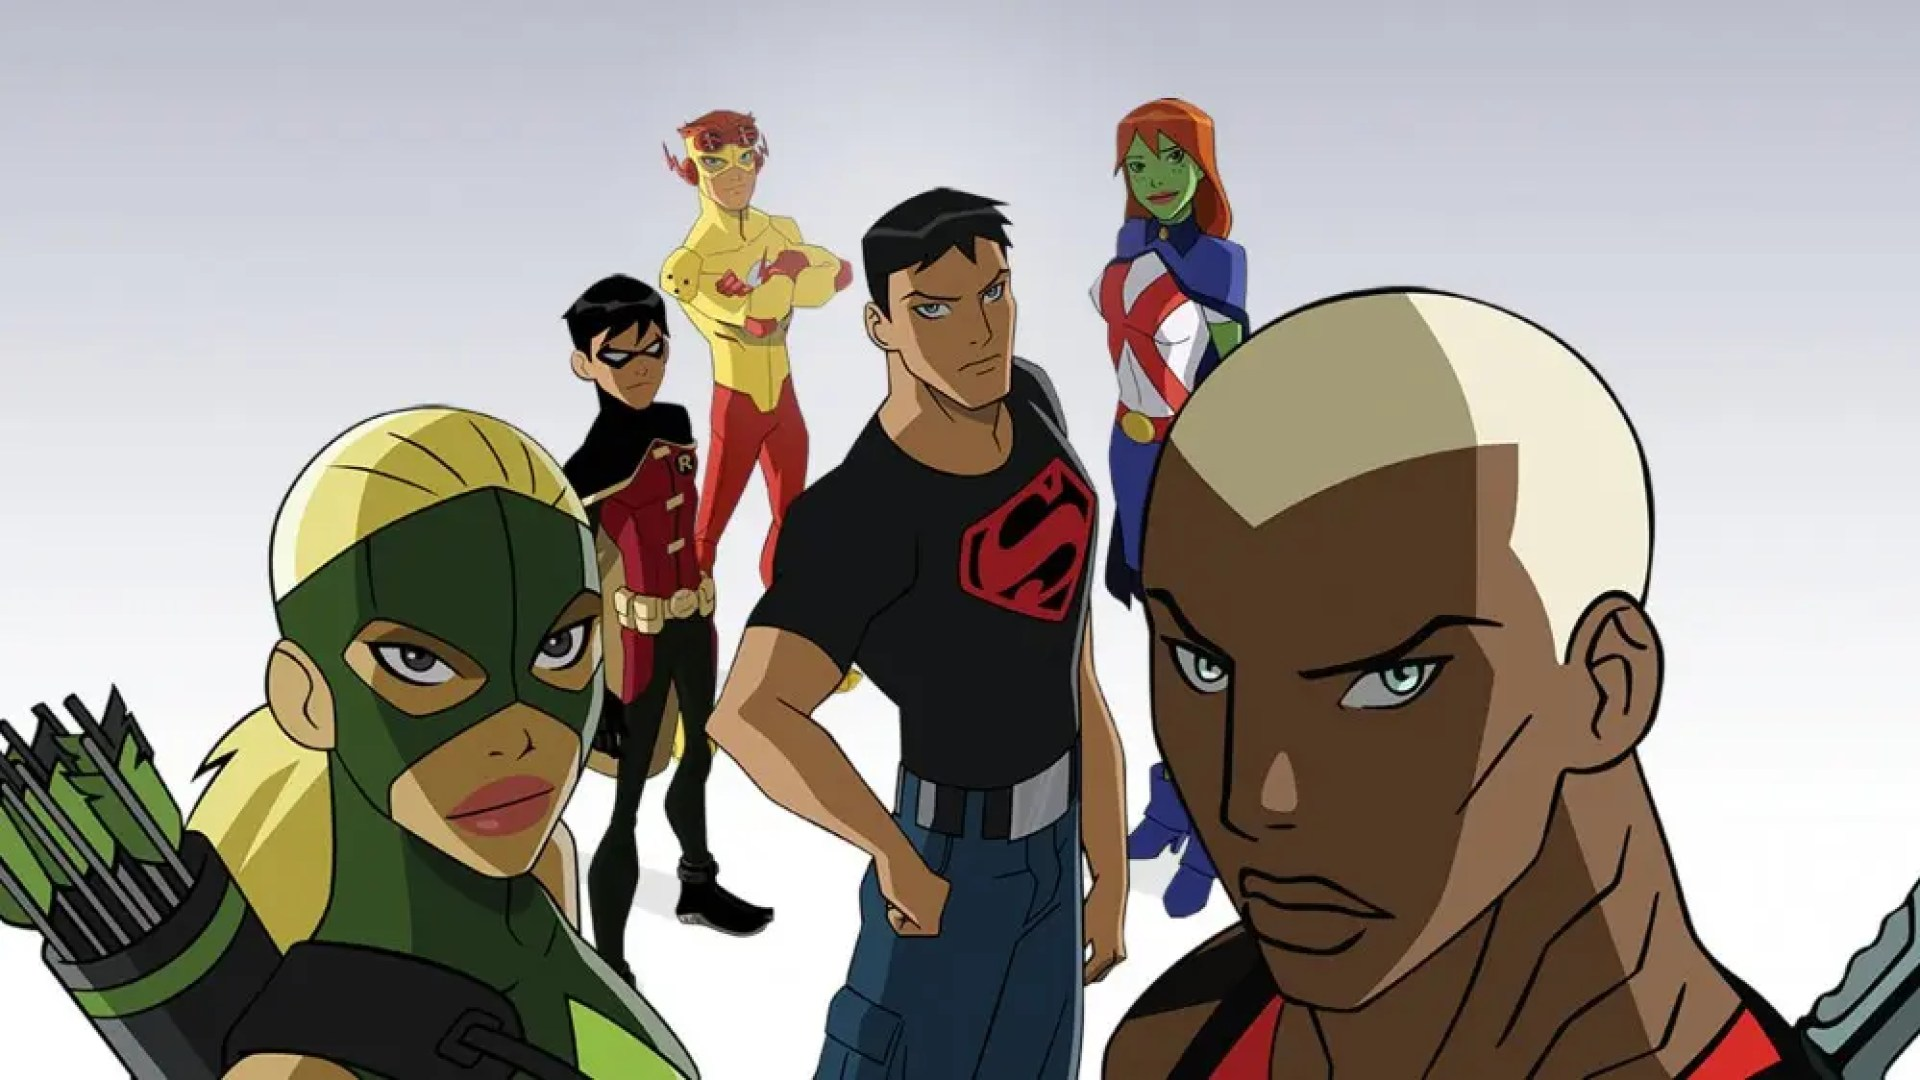 Kid Flash, Miss Martian, Robin, Superboy, Artemis, and Aqualad looking directly at the viewer.